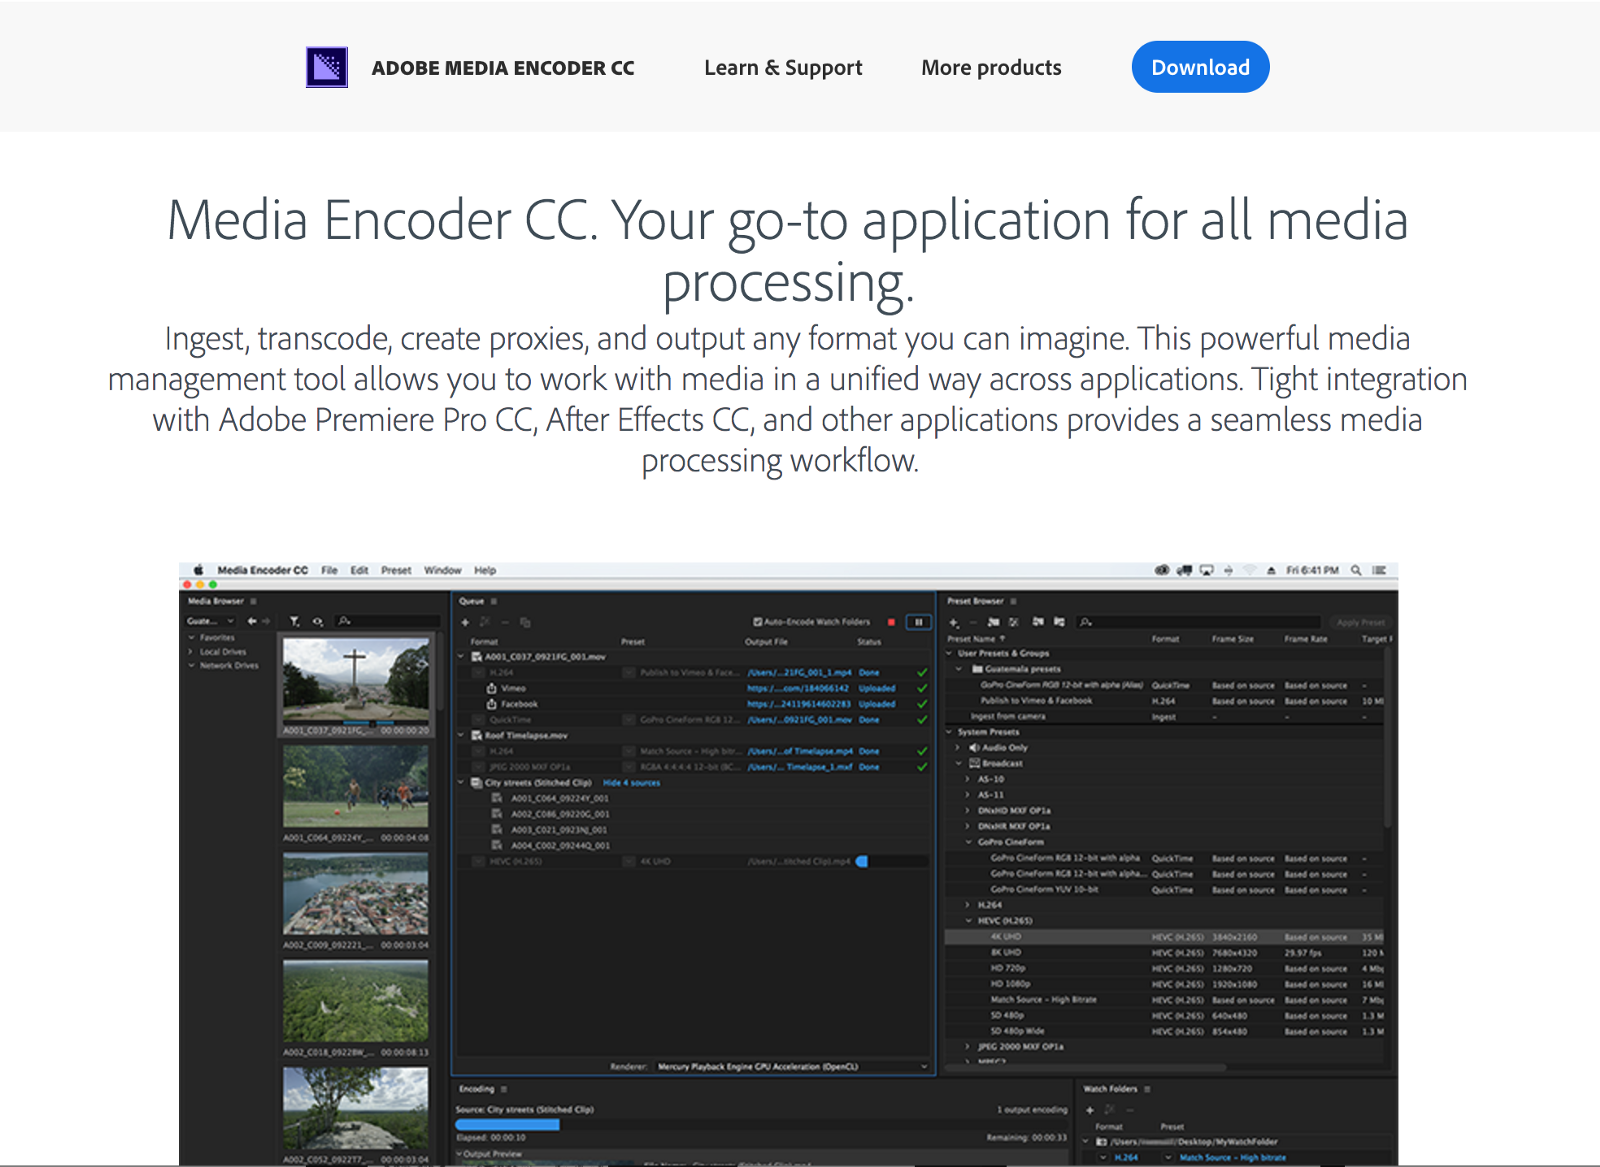 adobe media encoder cc 2015 download windows